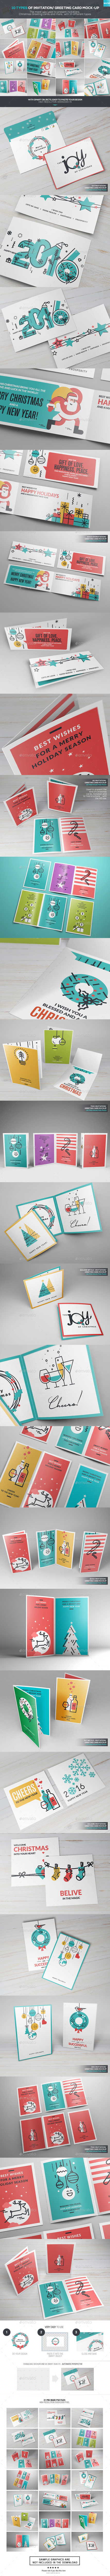 10 types of invitation greeting card mock up by wutip graphicriver 10 types of invitation greeting card mock up miscellaneous print m4hsunfo